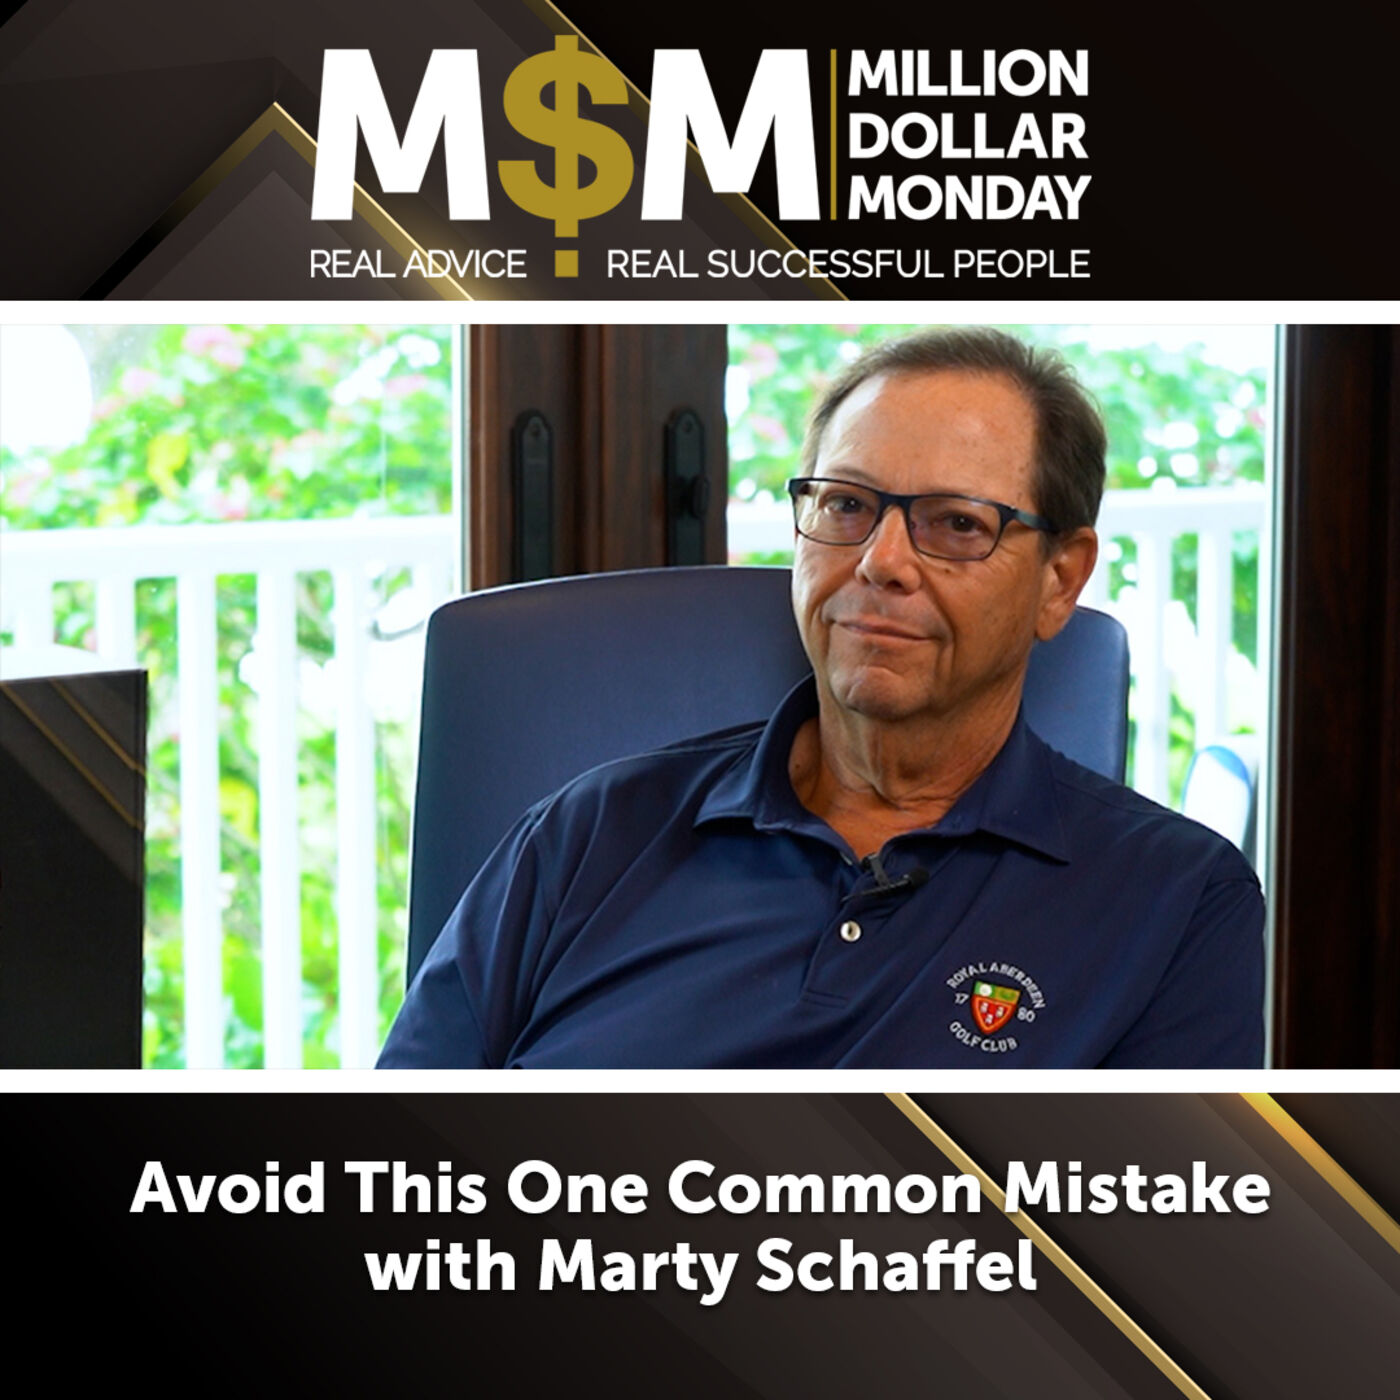 Avoid This One Common Mistake with Marty Schaffel